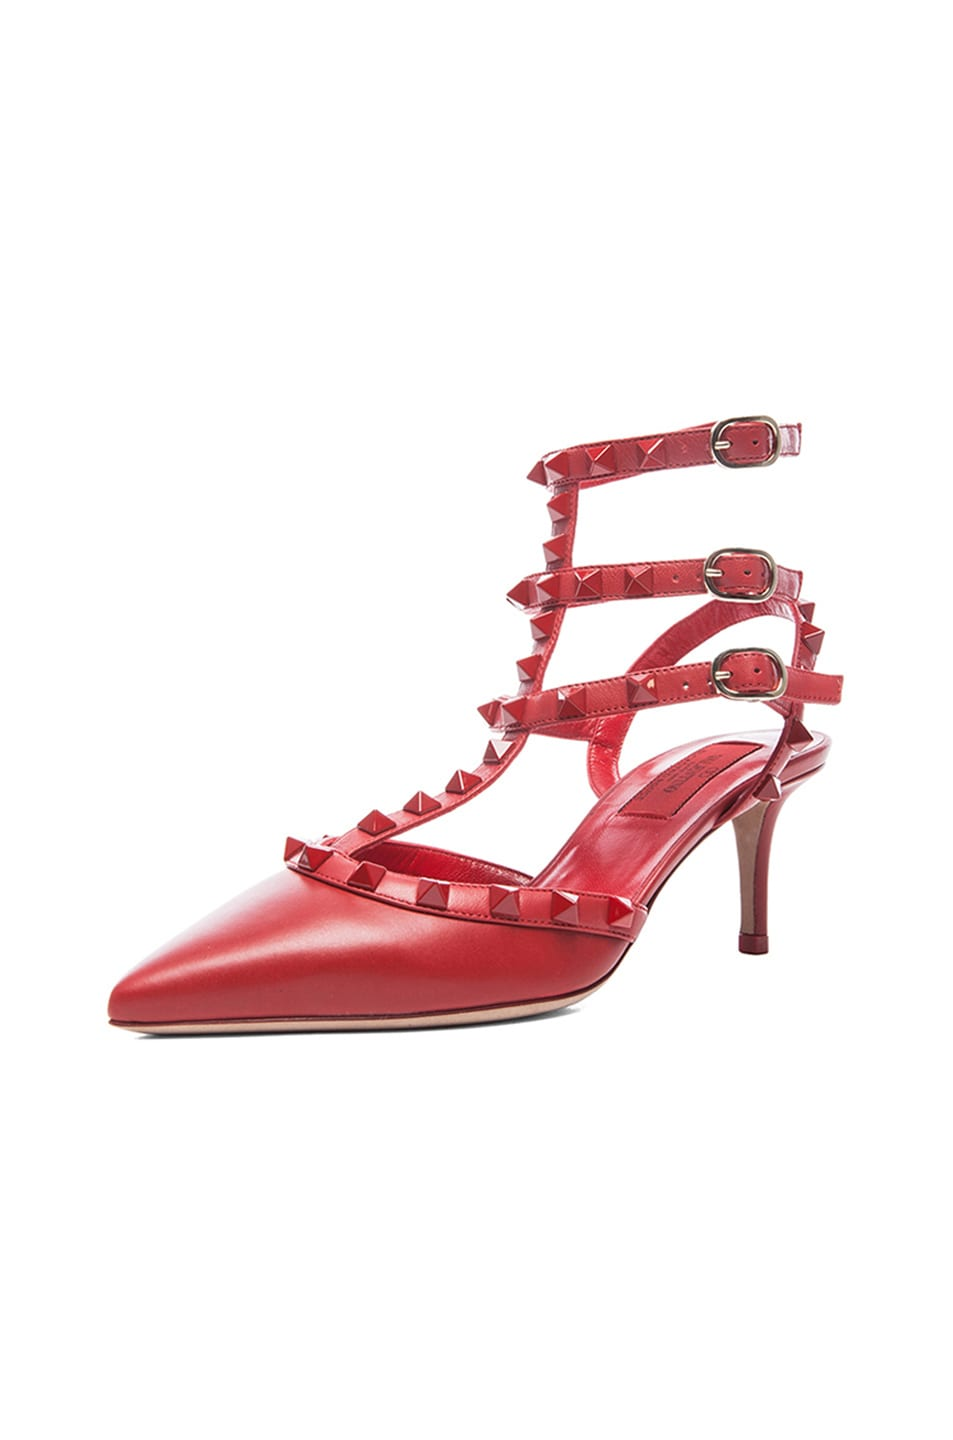 Image 2 of Valentino Rouge Rockstud Leather Slingbacks T.65 in Rosso Red